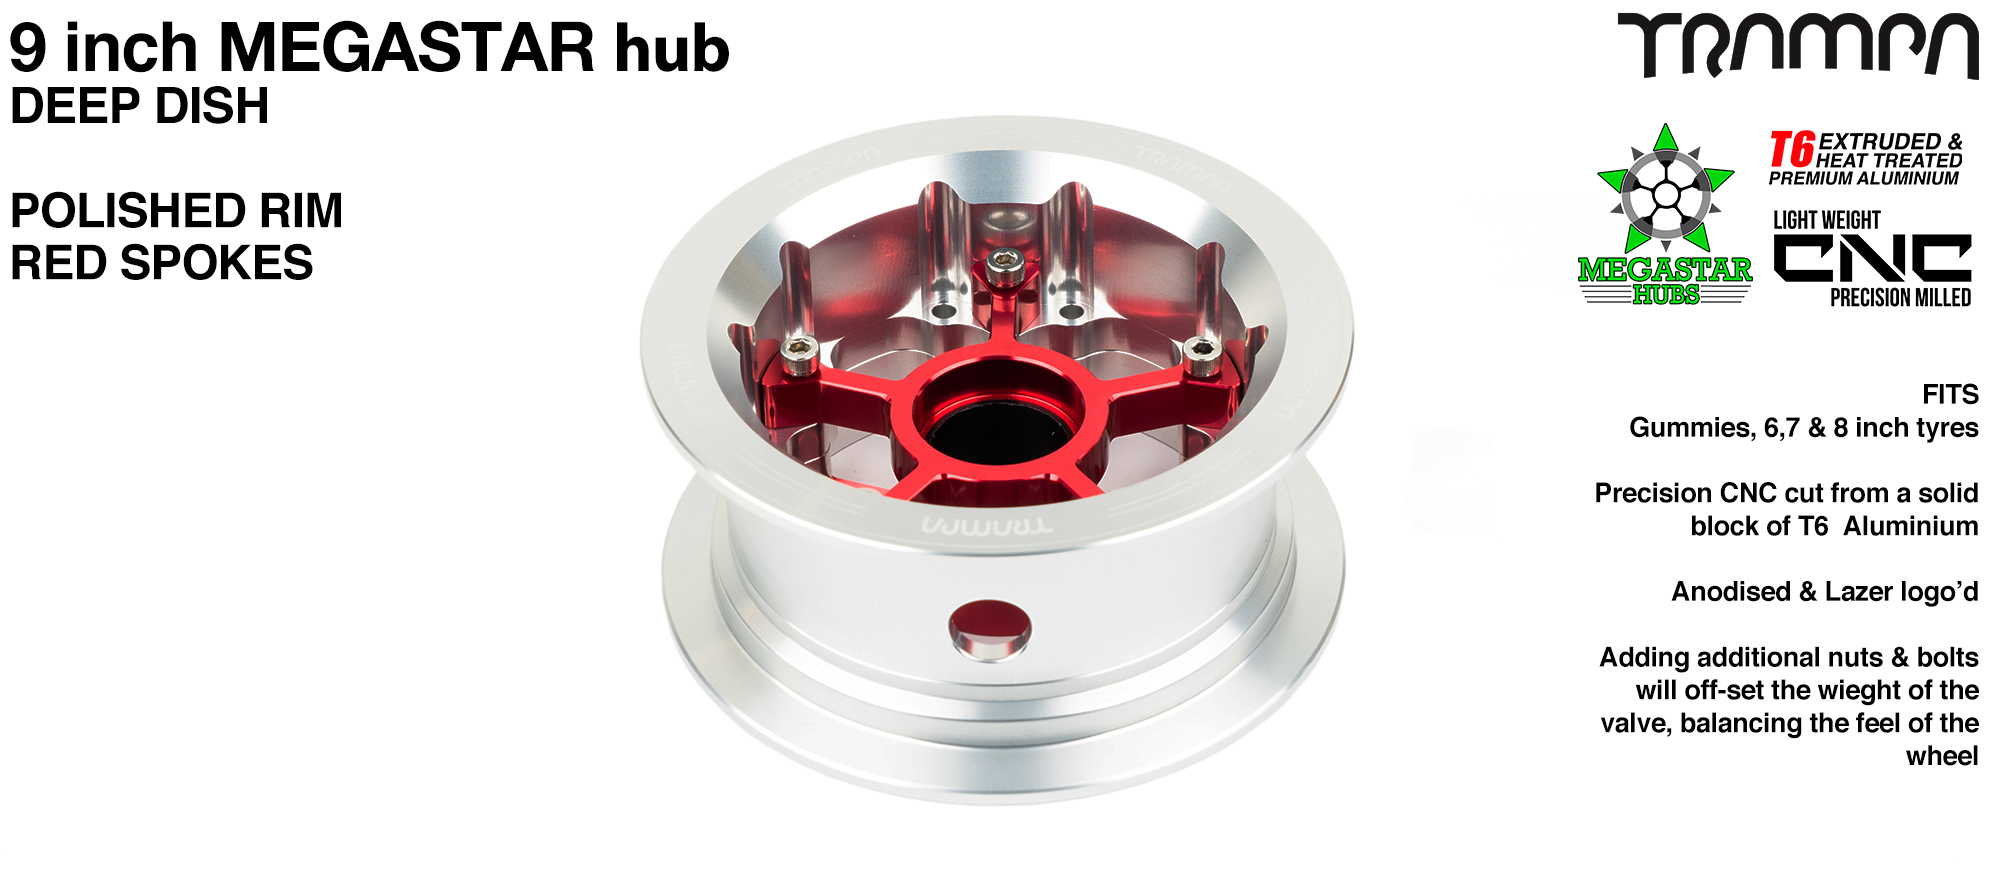 9 Inch MEGASTAR Hub - 2 Part Offset with Polished Rim with Red Spokes fits with all of TRAMPA's different 9 Inch Tyres